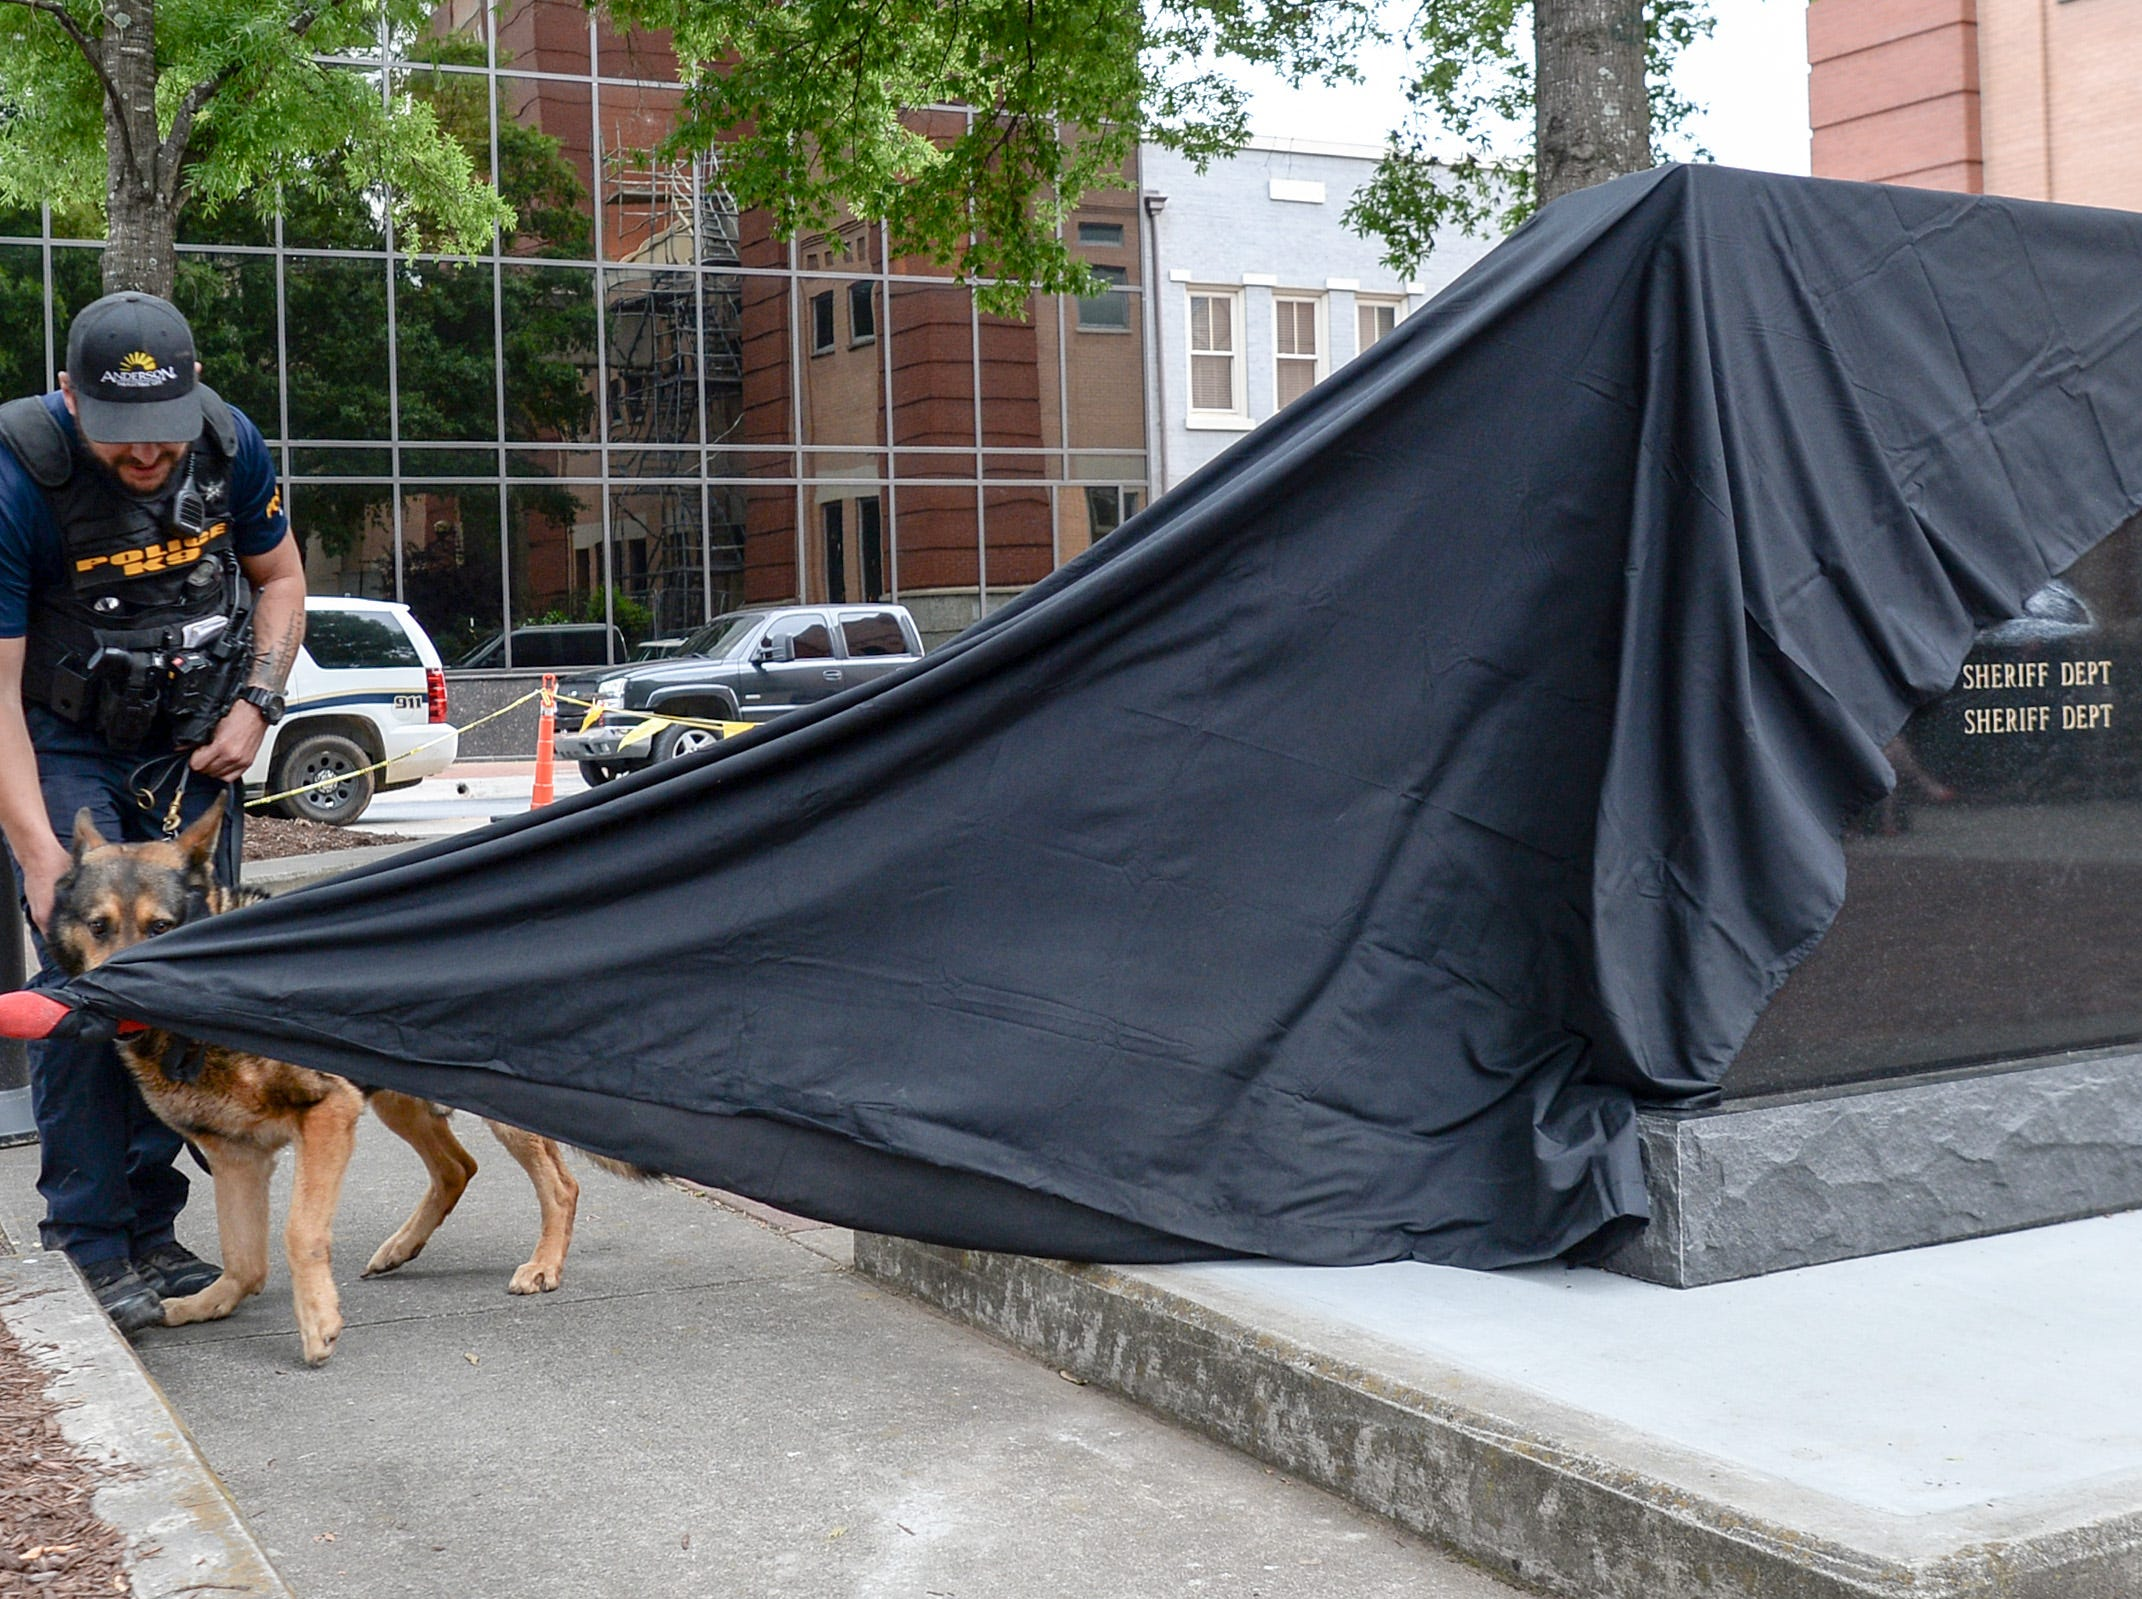 Cpl. Cory Barrow stands near his K-9 Peppa, pulling to unveil the new Fraternal Order of Police monument for fallen K-9 Duchess and Hyco, during the 2019 Peace Officer Memorial Service Wednesday May 15, 2019. People attended to help honor the lives of officers lost in the line of duty.